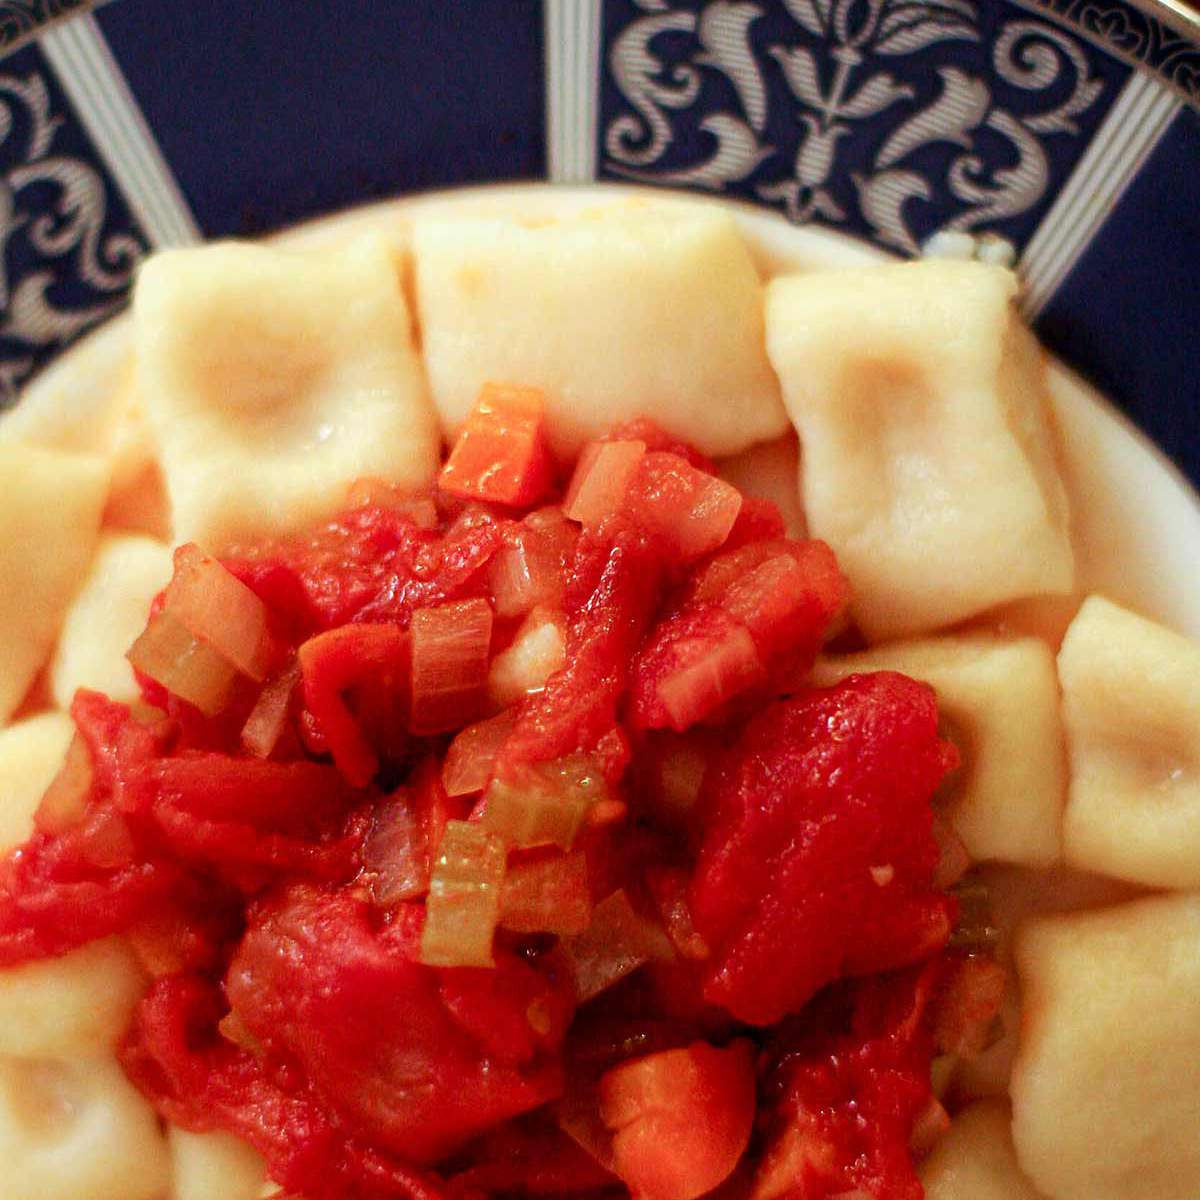 Dish of Potato Gnocchi with red sauce